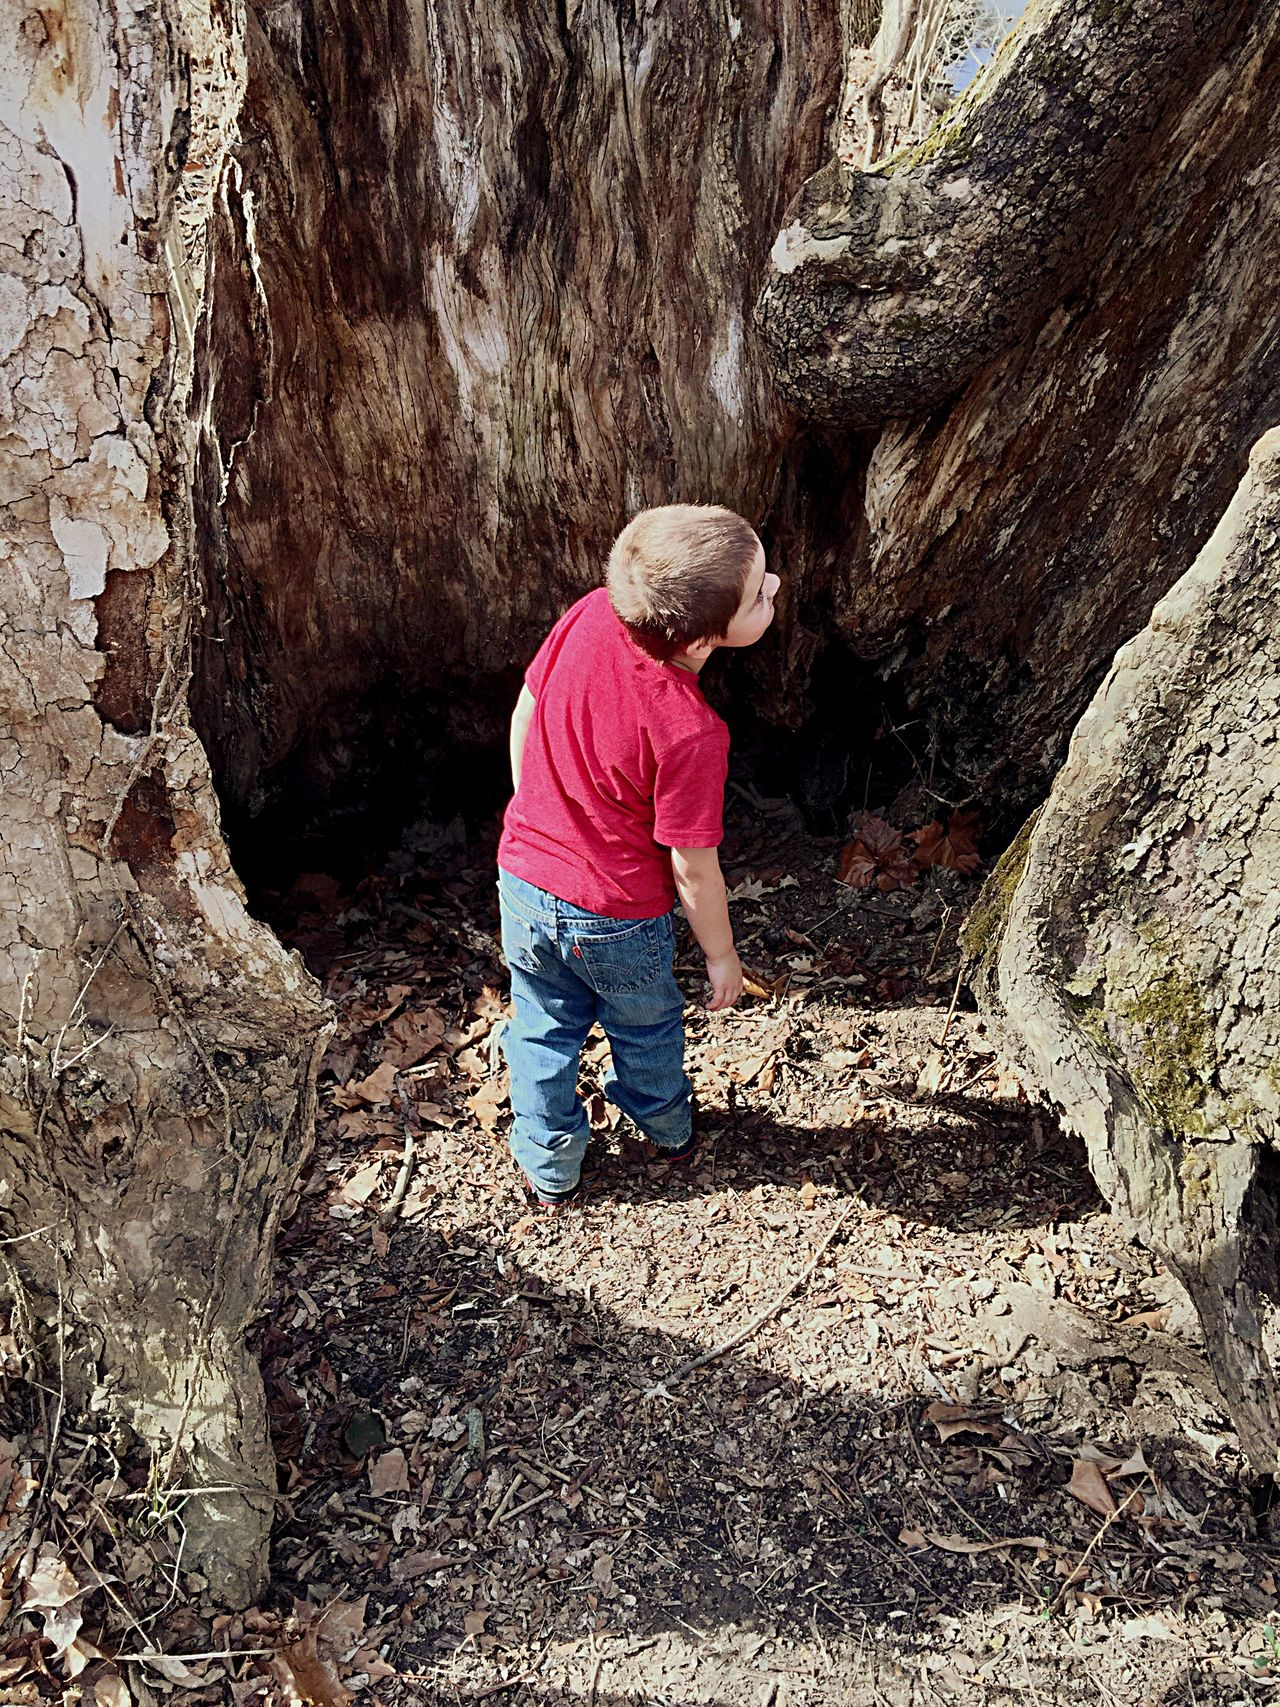 Inside of an old tree. The other half is still alive. I took my camera up inside while filming a video and found living animals coming out at me. My Grandson thought that was very funny. Love Enjoying Life Nature Is My Best Friend Tadaa Community EyeEm Nature Lover Hugging A Tree Tree Nature Nature_collection Eye4photography  From My Point Of View Check This Out Notes To Leave Behind Nature Photography Naturelovers EyeEm Best Shots - Nature Tree_collection  Tree Trunk Portrait Of A Toddler Light And Shadow